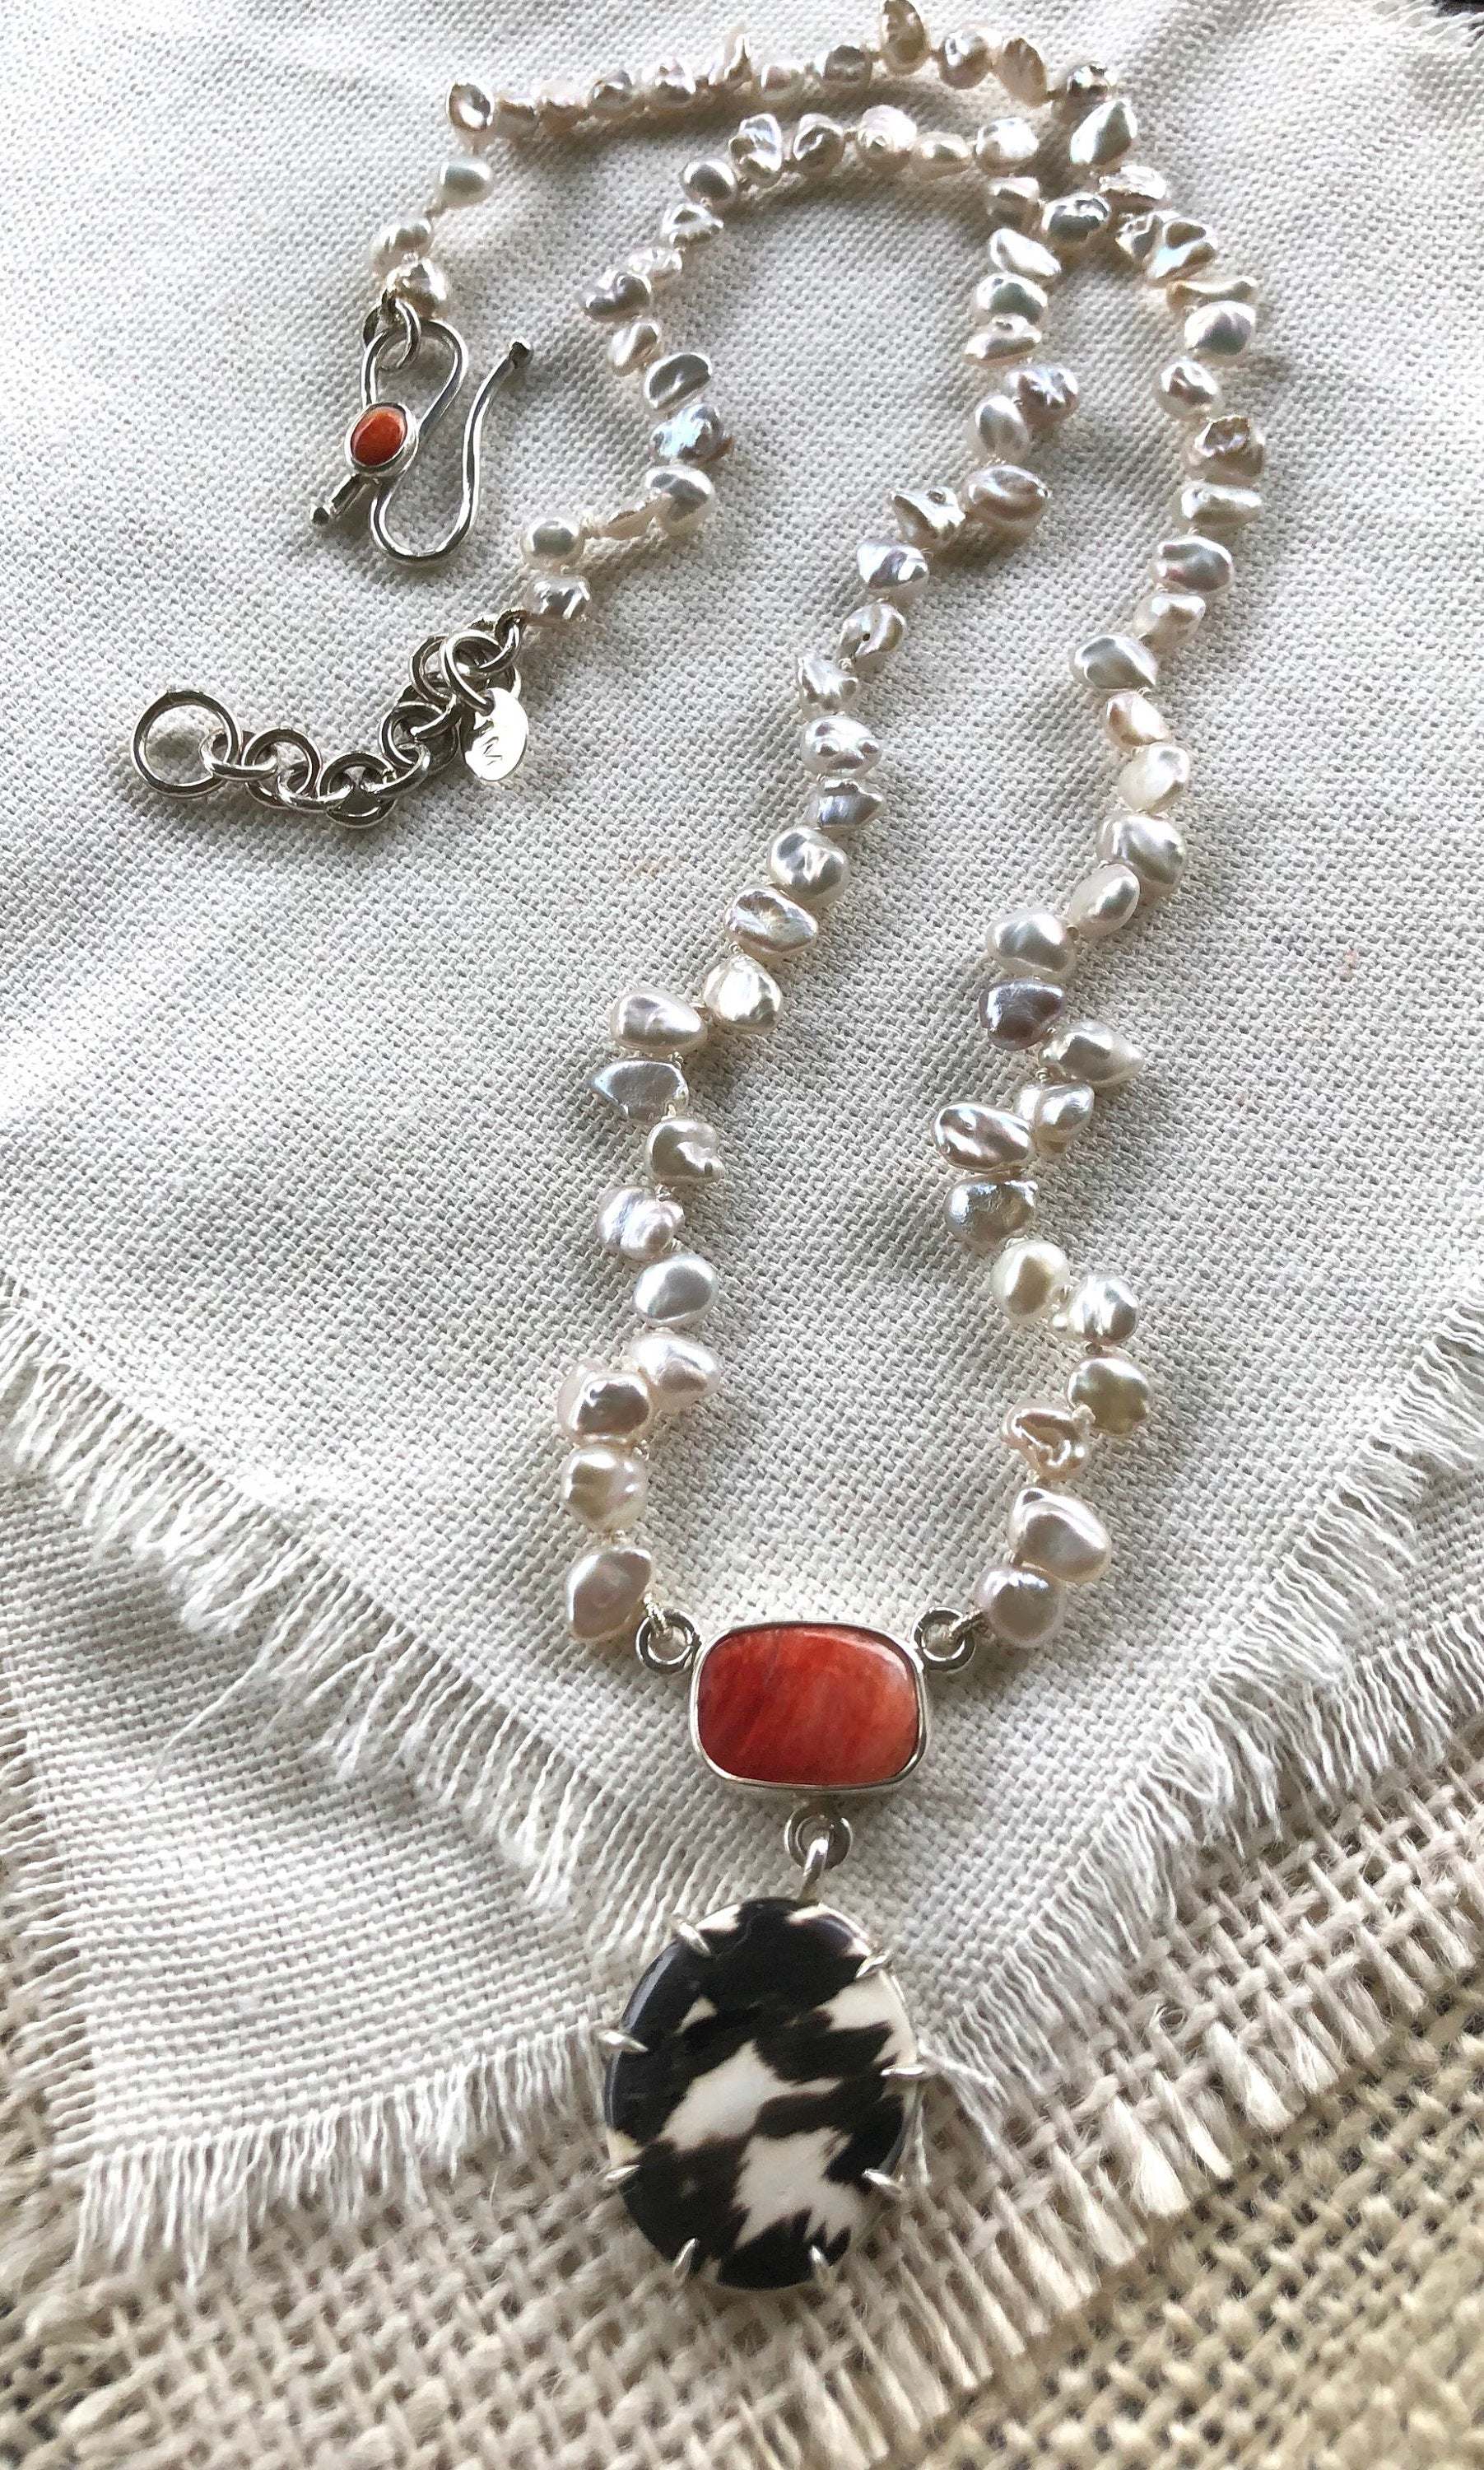 Spiny Oyster Shell Pendant on Pearls, Spiny Oyster Shell Jewelry, Spiny Oyster Shell Necklace, Spiny Oyster Shell, Pearl Jewelry